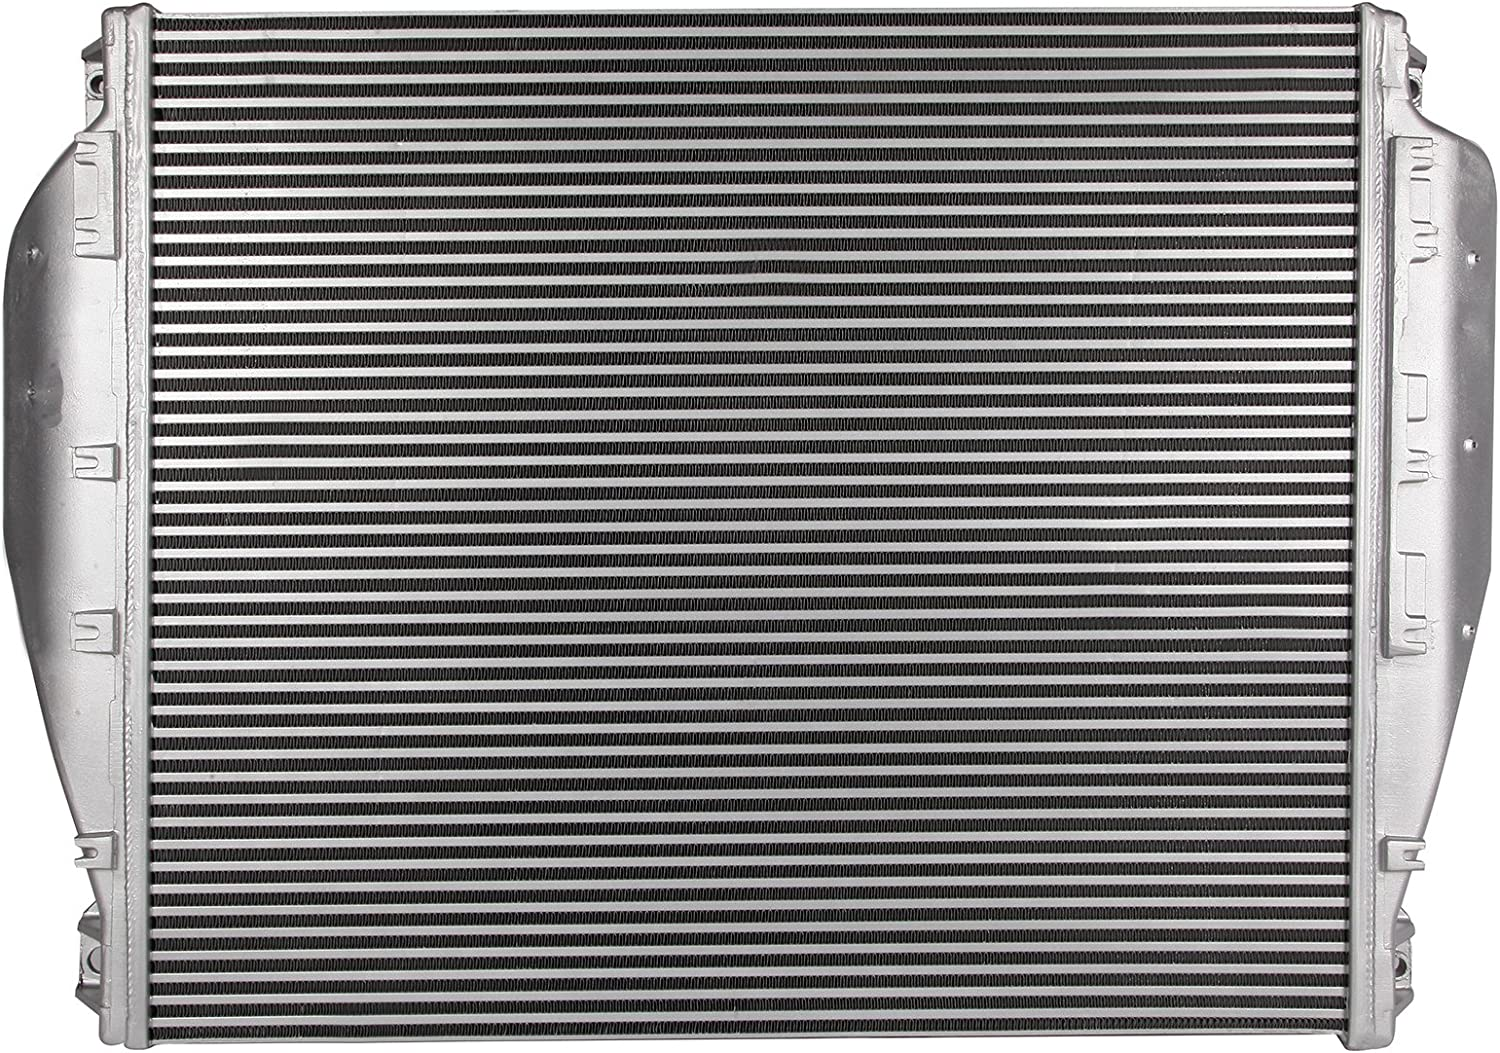 INEEDUP 2400-007 Radiator Assembly for Replace 2008-2015 Chicago Directly managed store Mall Western